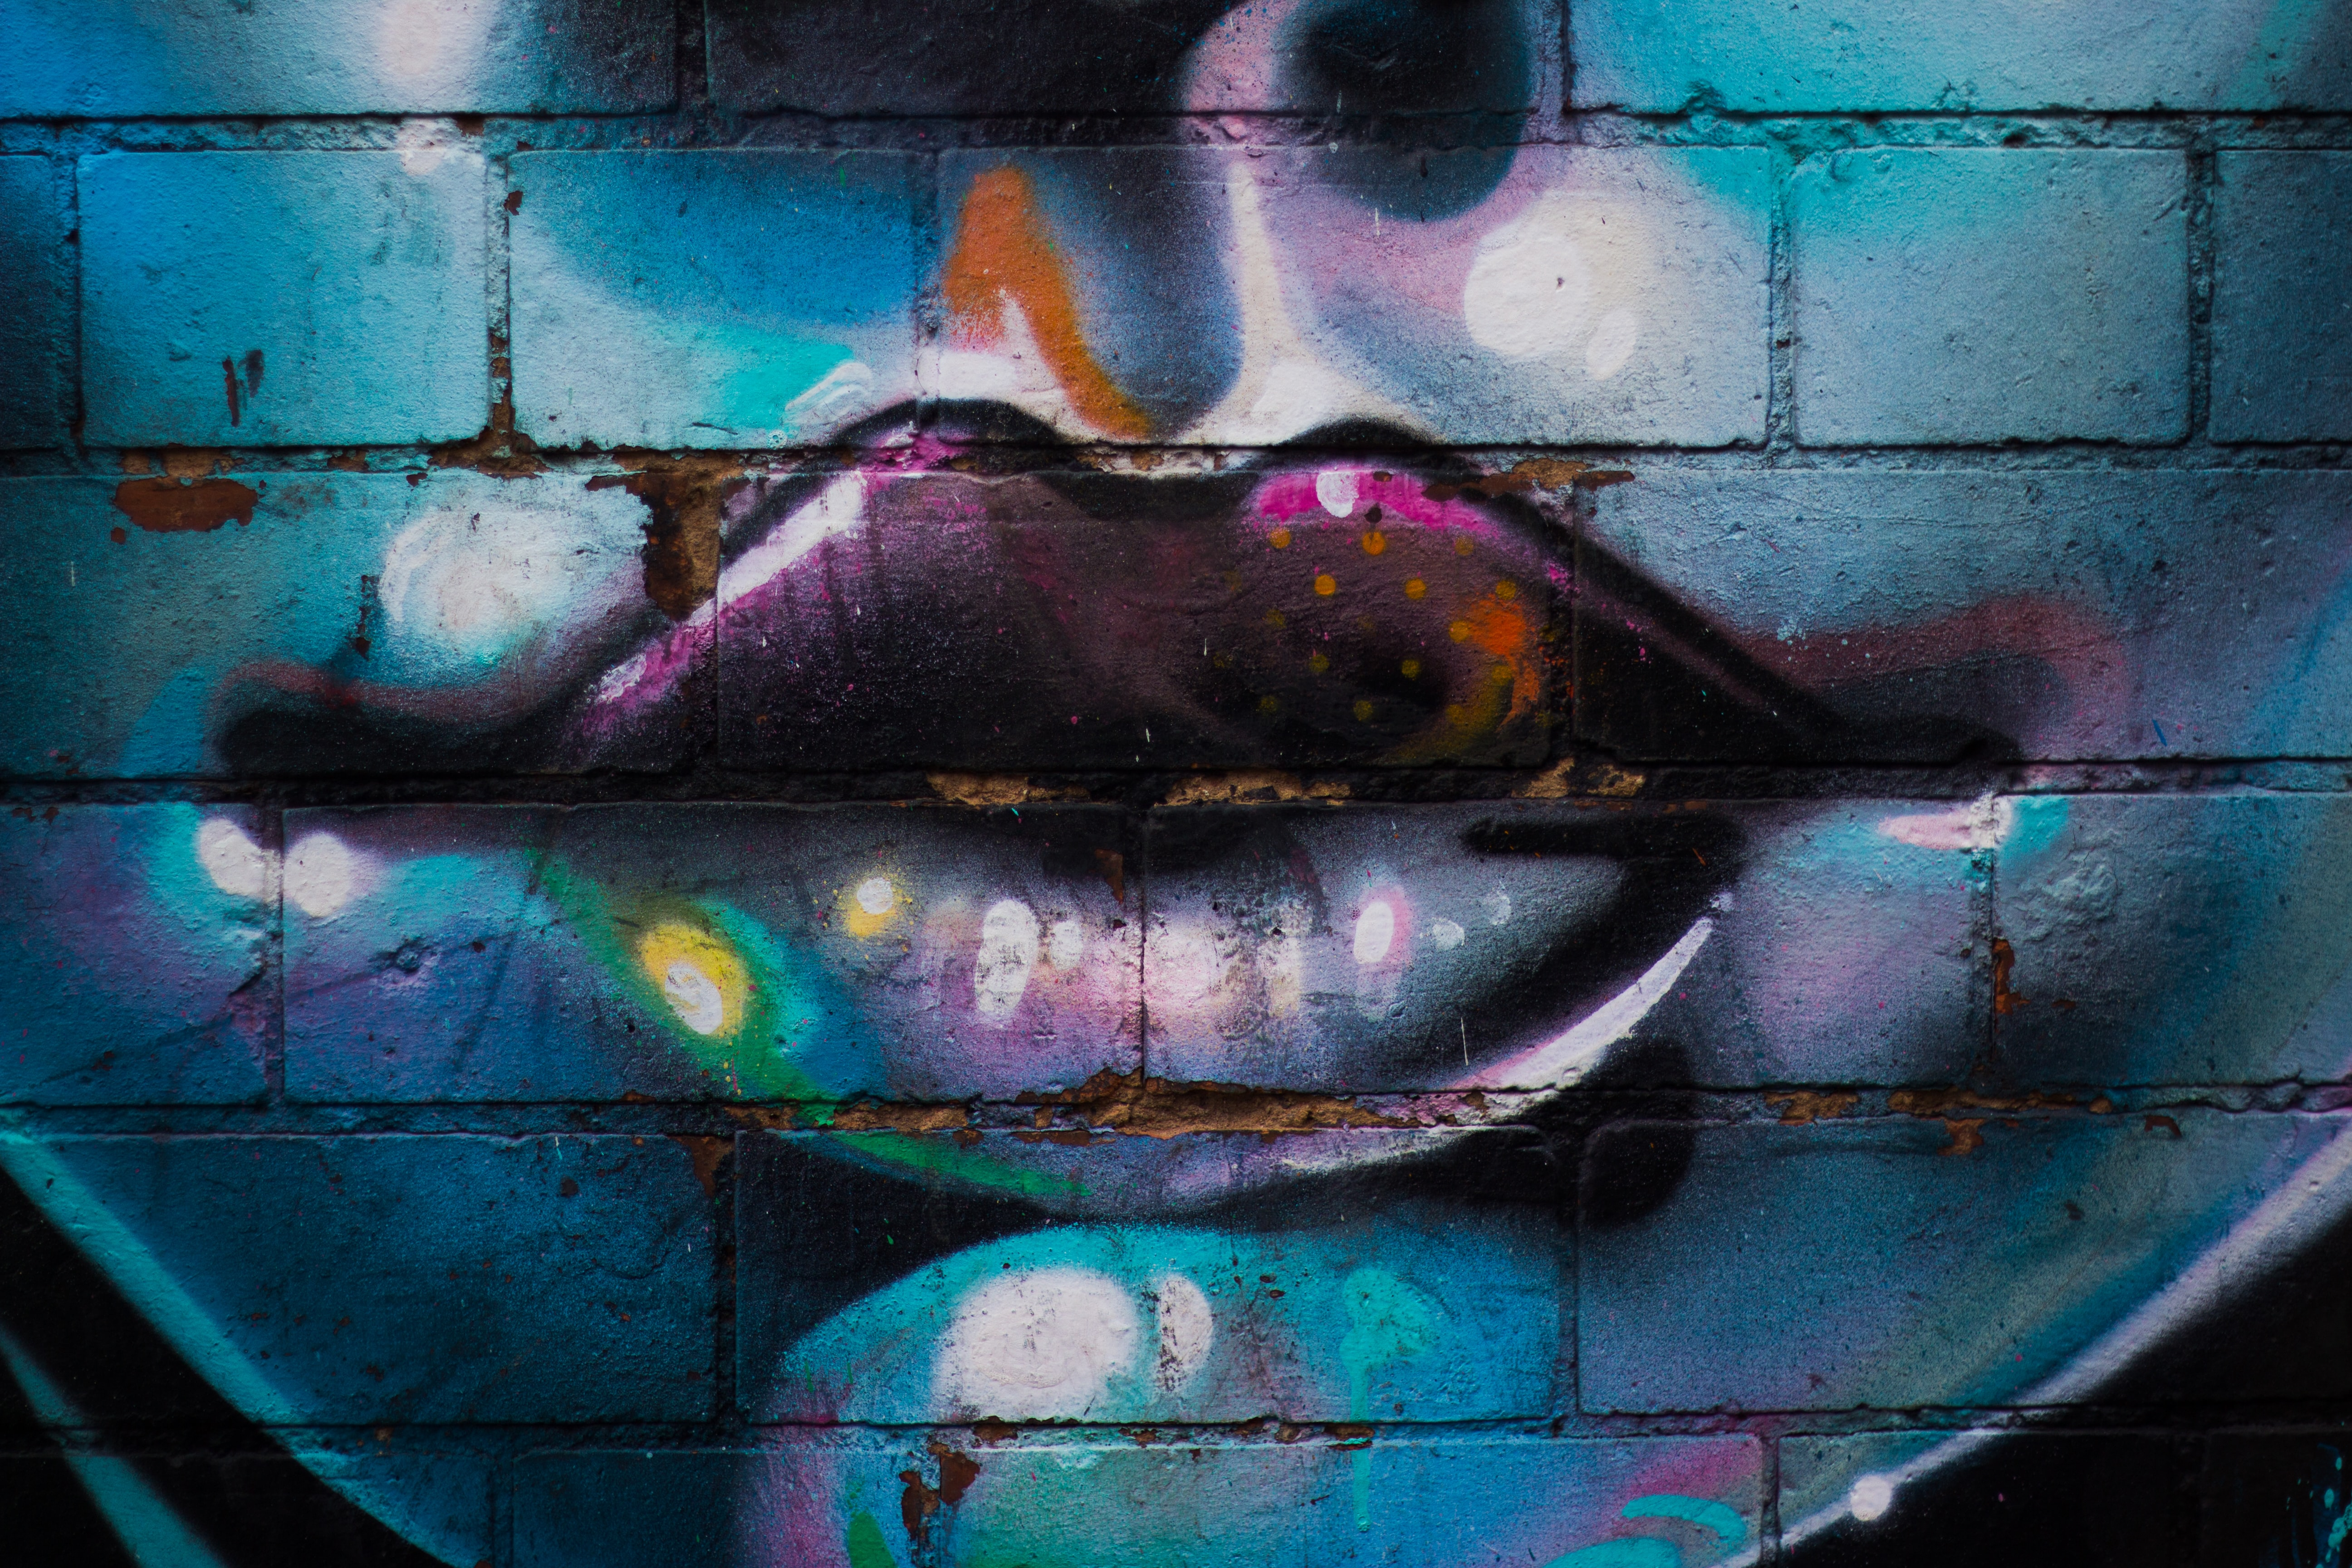 Colorful lips, chin and nose of a face painted on a brick wall.